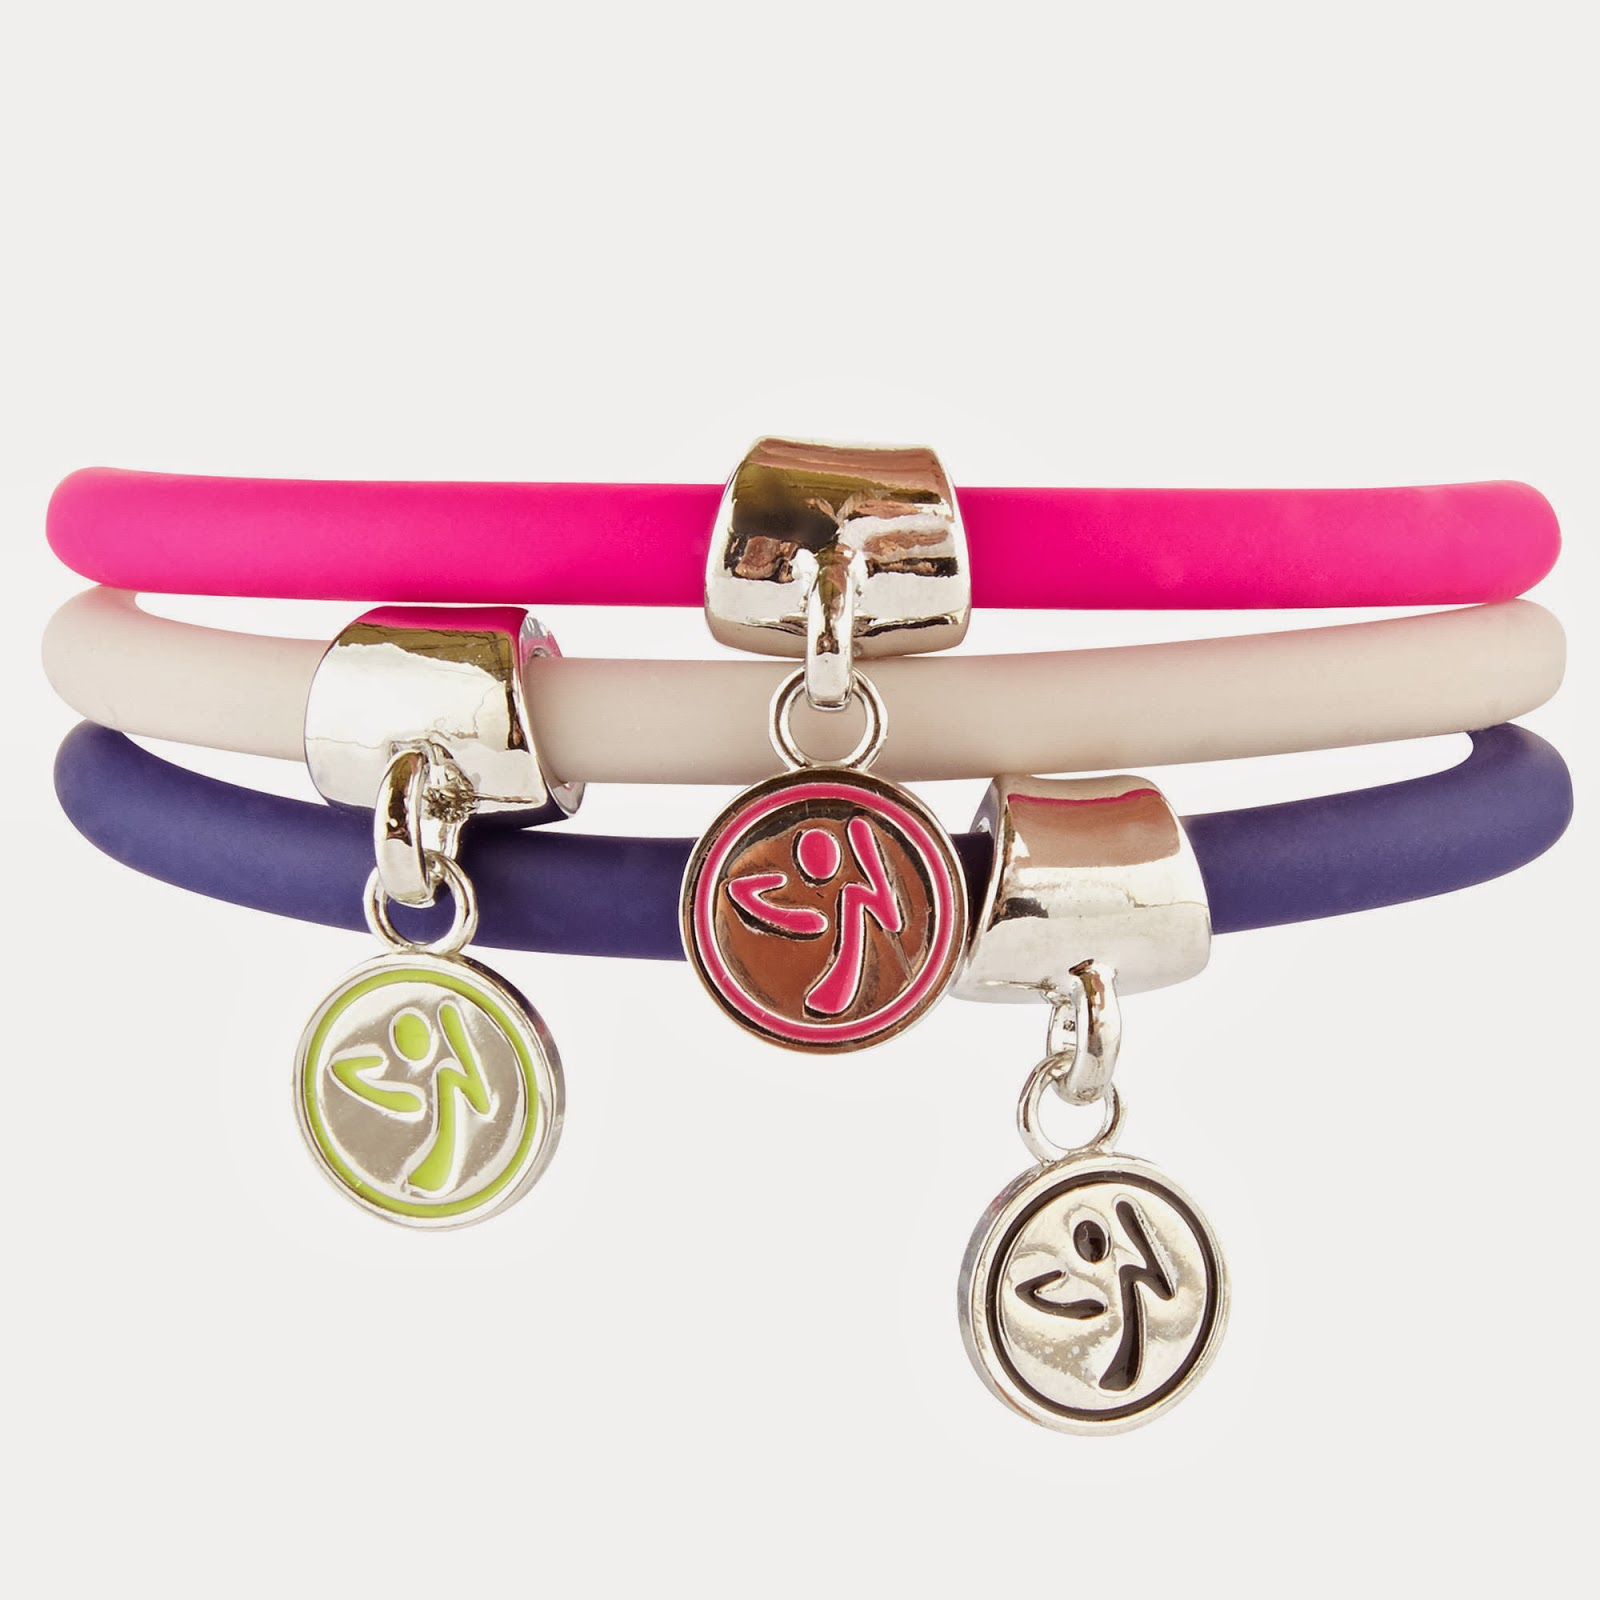 http://www.zumba.com/en-US/store-zin/US/product/cant-touch-this-charm-bracelets-3-pack